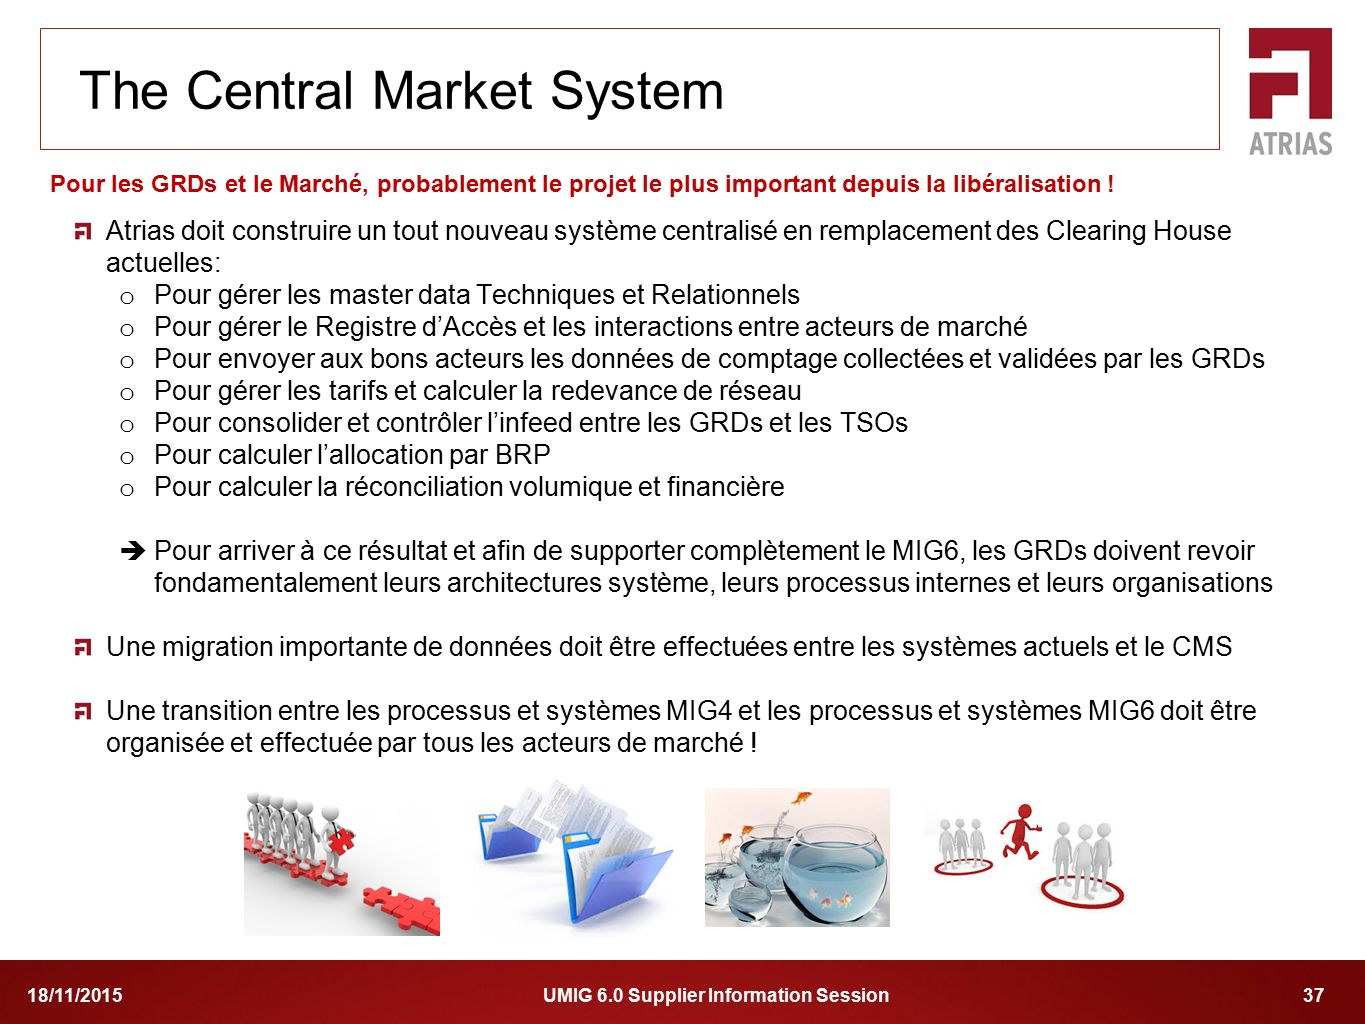 The Central Market System